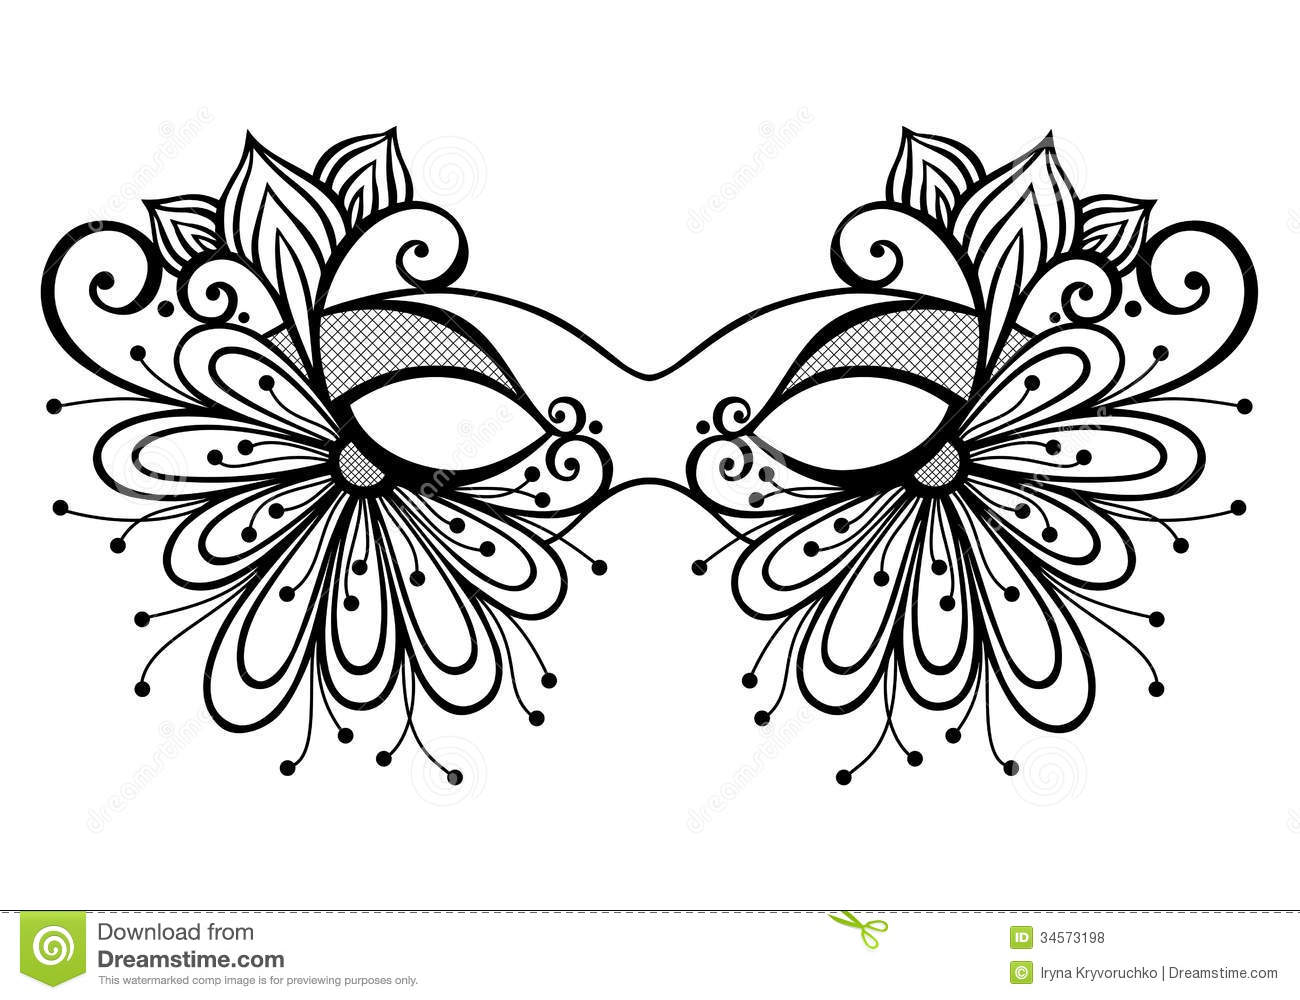 Masquerade Mask stock vector. Illustration of objects - 34573198